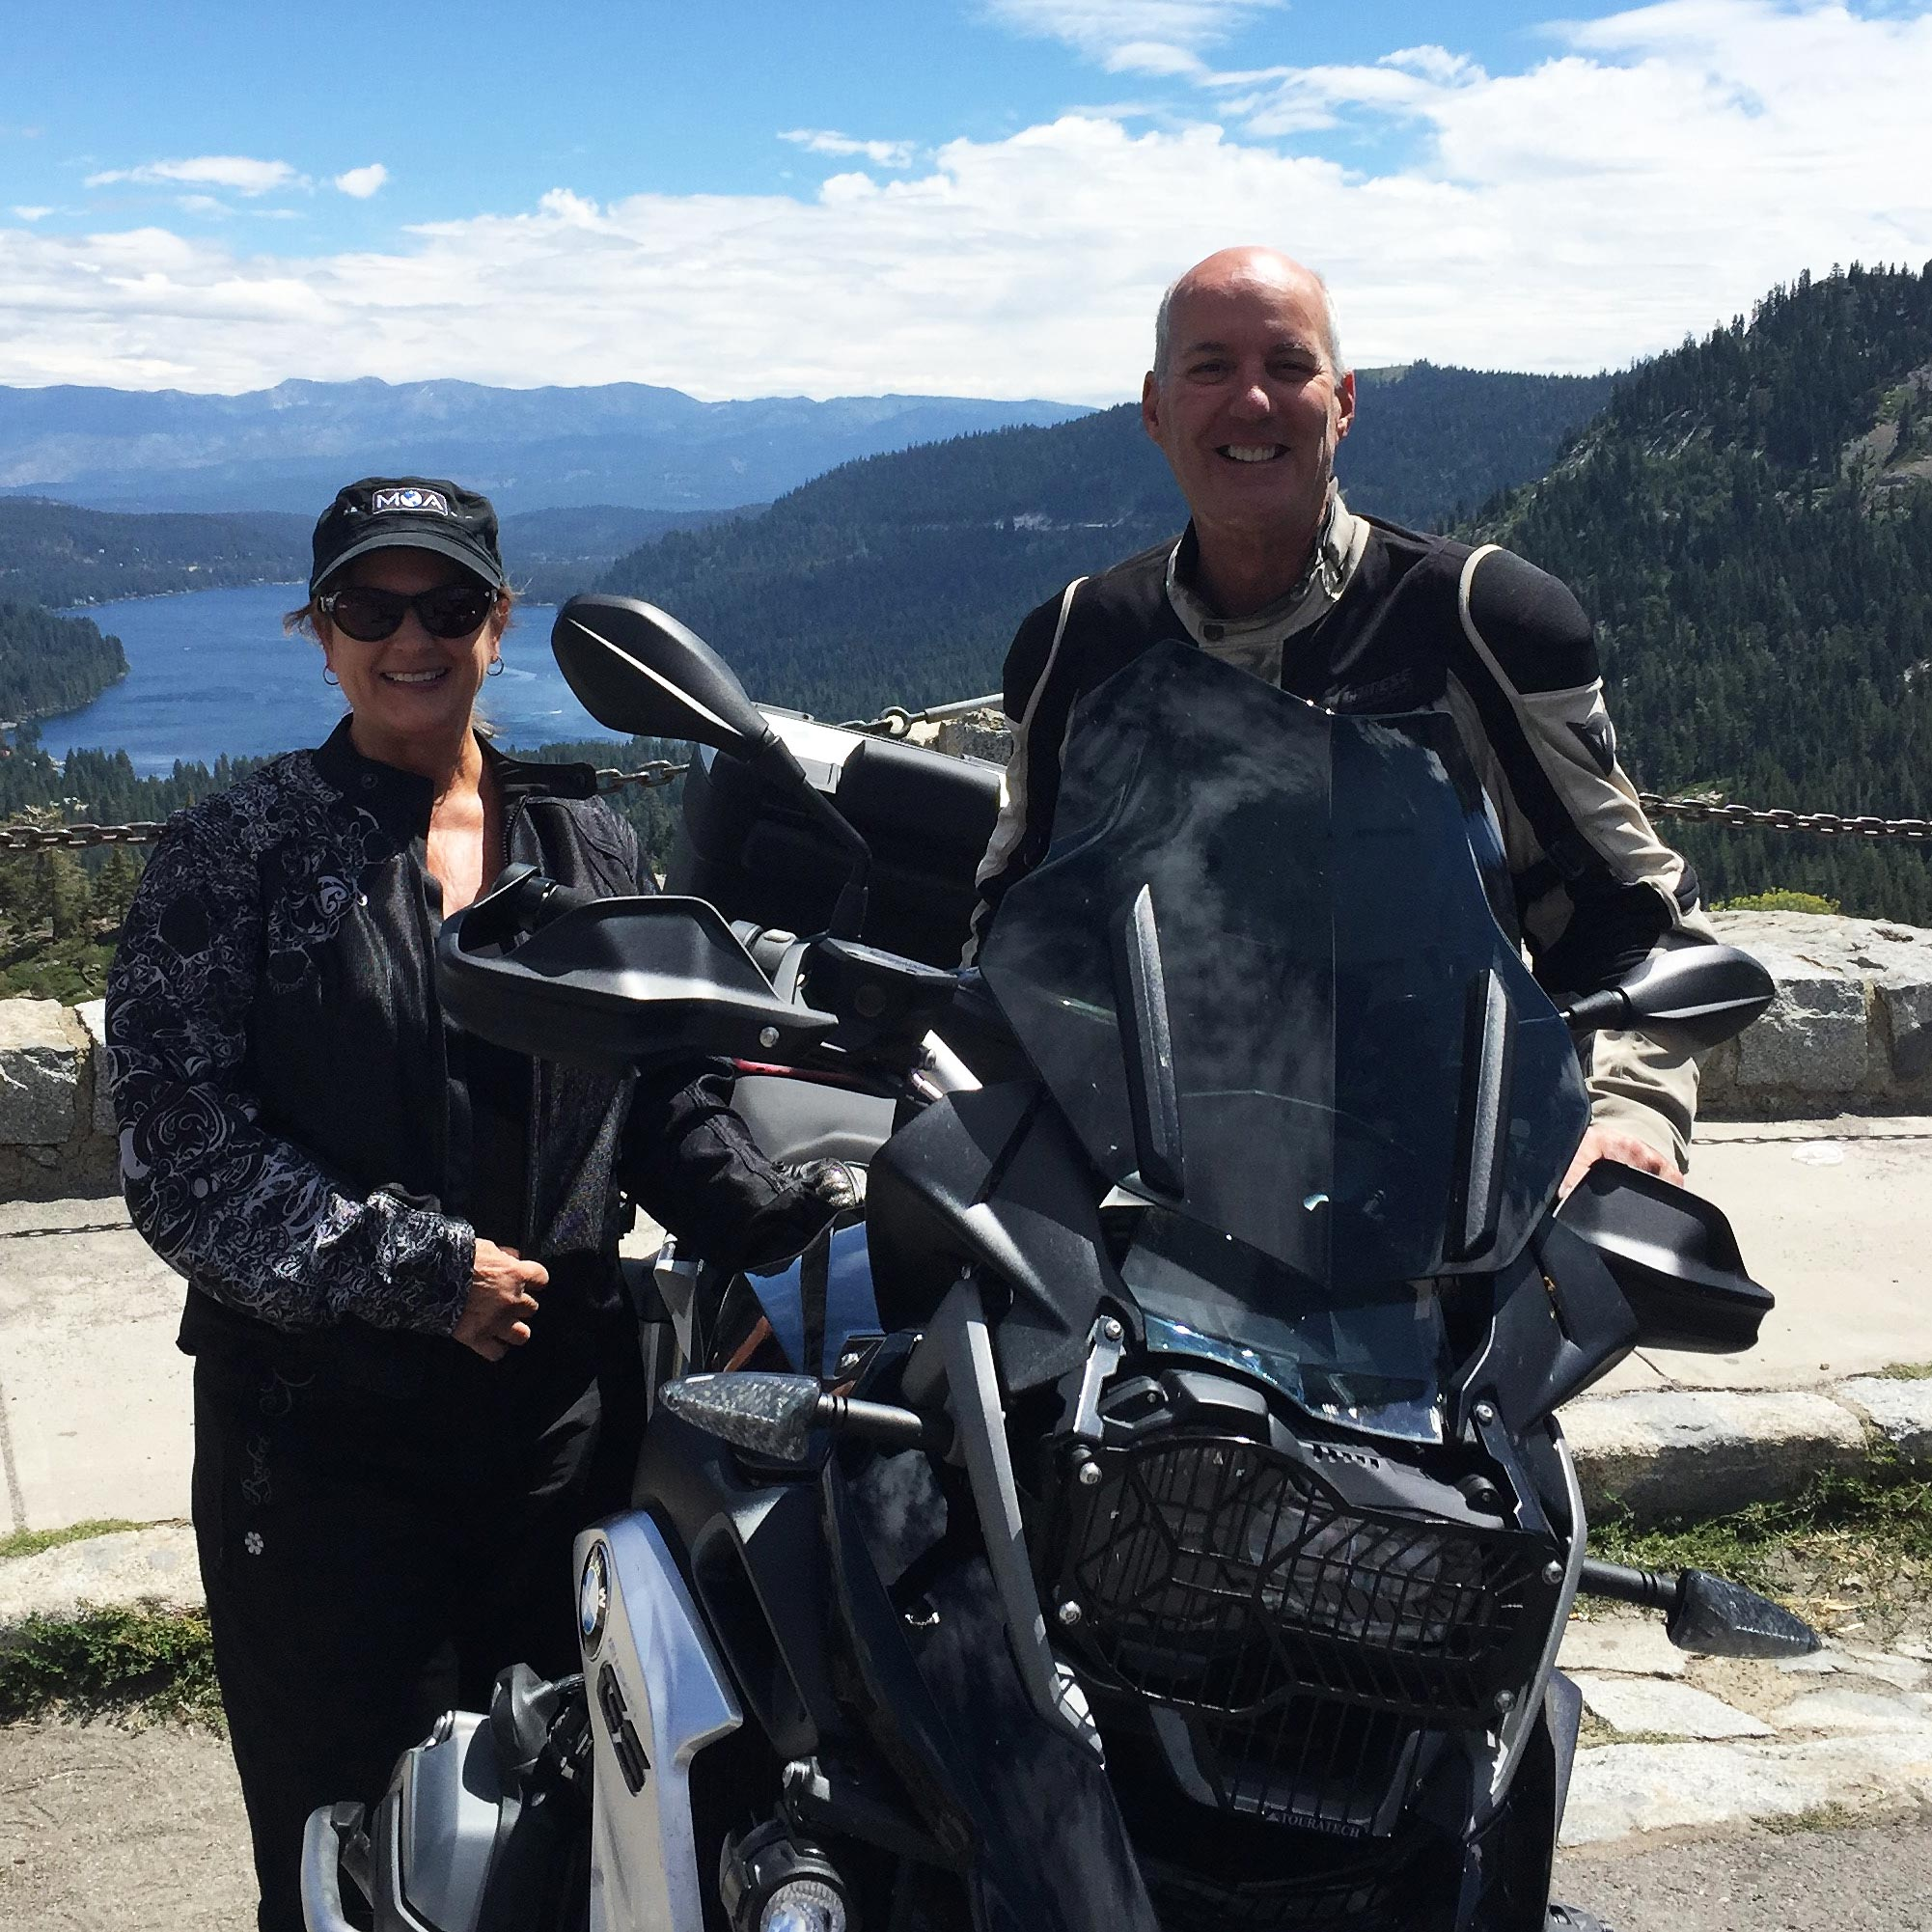 Northern California BMW Motorcycle Tour in Lake Tahoe California by High Road Motorcycle